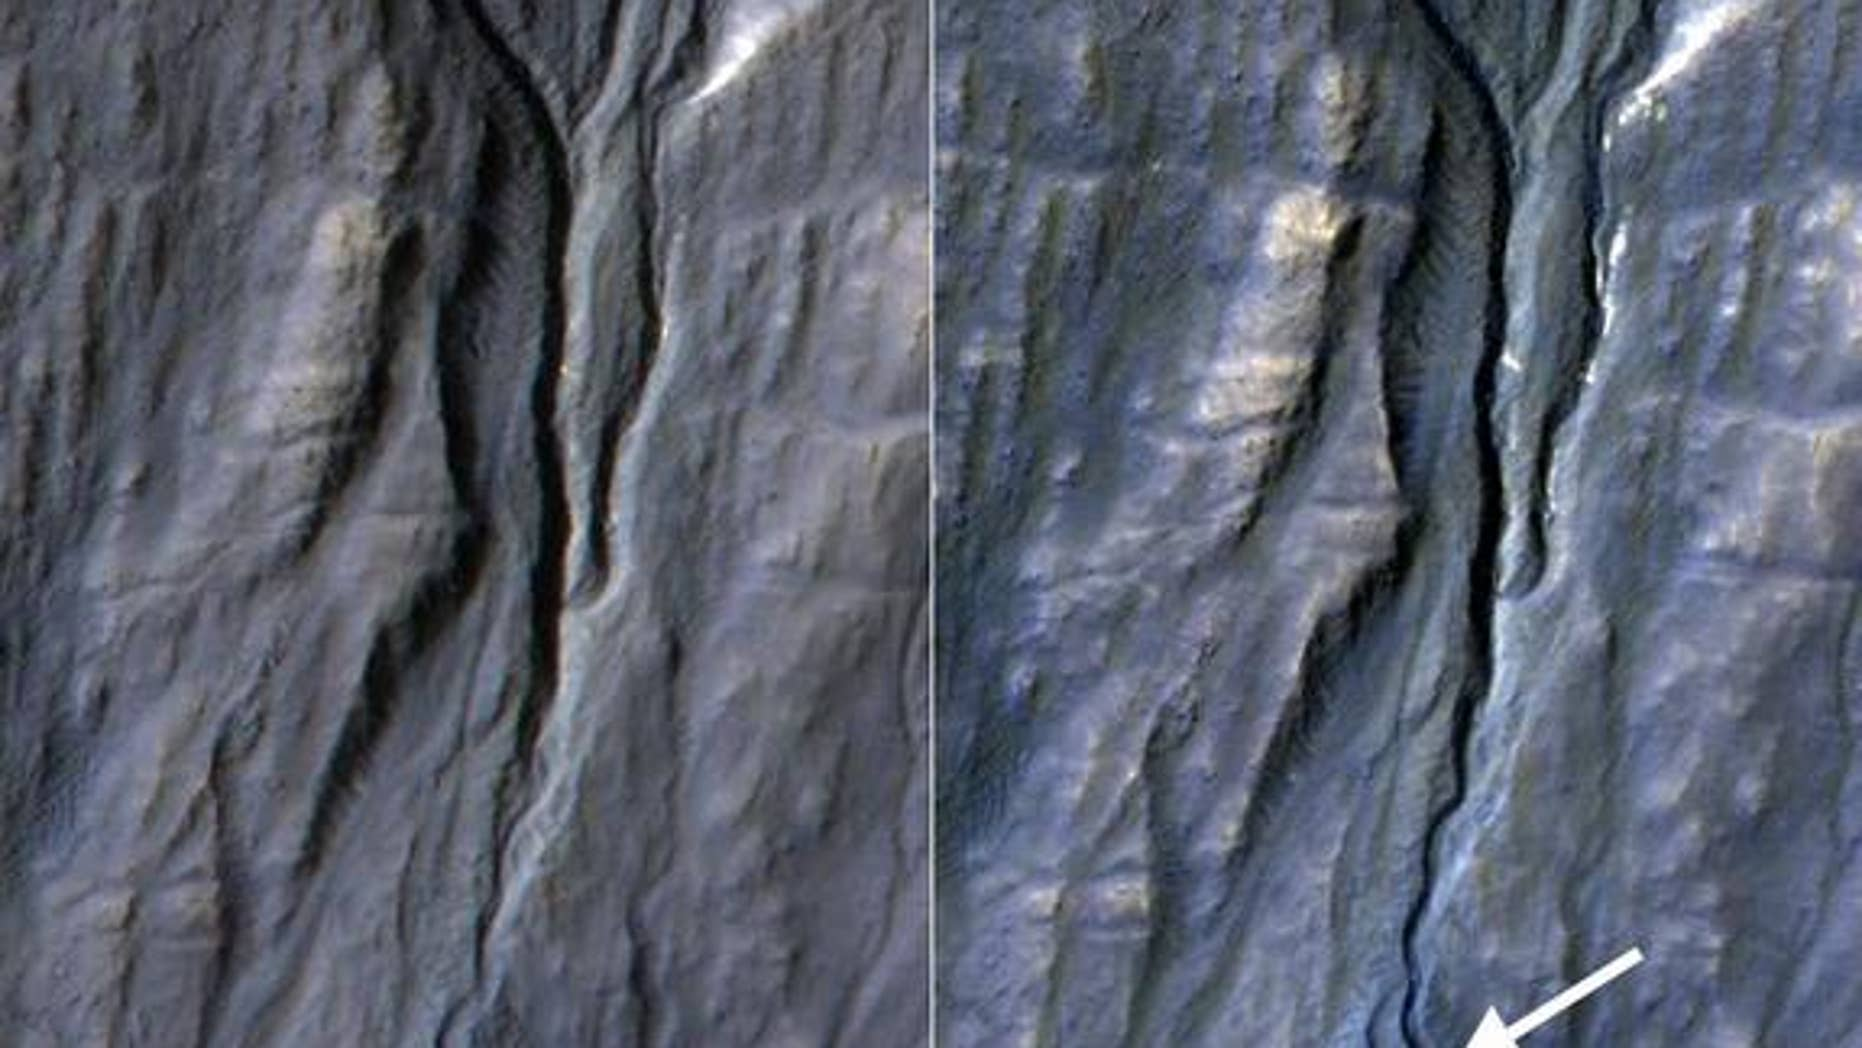 This pair of before (left) and after (right) images from the High Resolution Imaging Science Experiment (HiRISE) camera on NASA's Mars Reconnaissance Orbiter documents the formation of a substantial new channel on a Martian slope between Nov. 5